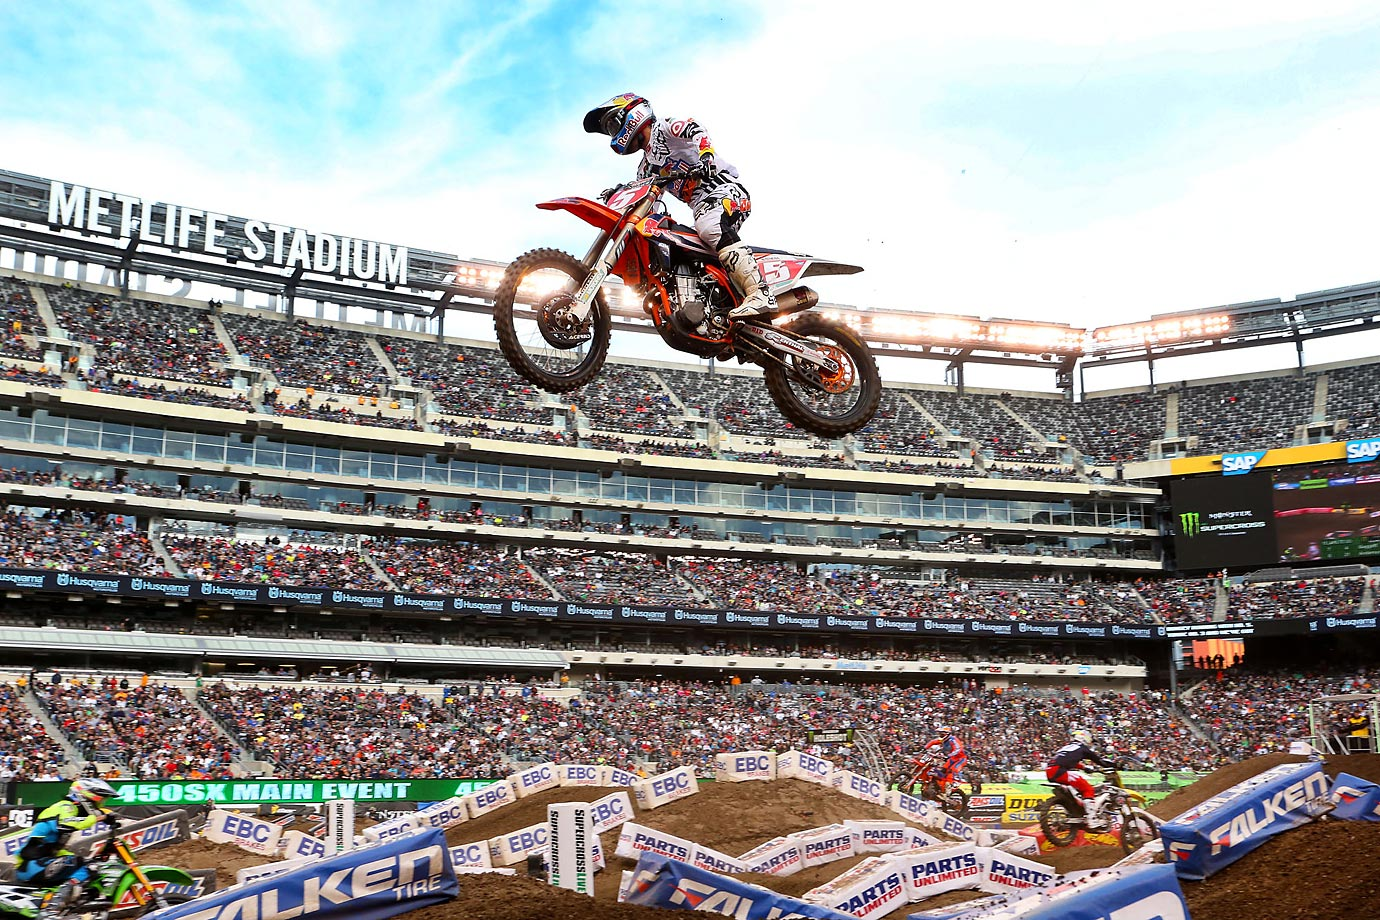 Sports Illustrated contributing photographer Gary Bogdon spent the April 24-26 weekend behind the scenes with Red Bull KTM Racing Team Supercross rider Ryan Dungey (pictured here getting some big air) at the 2015 Monster Energy Supercross race at Metlife Stadium. Dungey, 25, who's already clinched his second 450 Supercross Championship, will finish out the season at the last race on Saturday in Las Vegas.